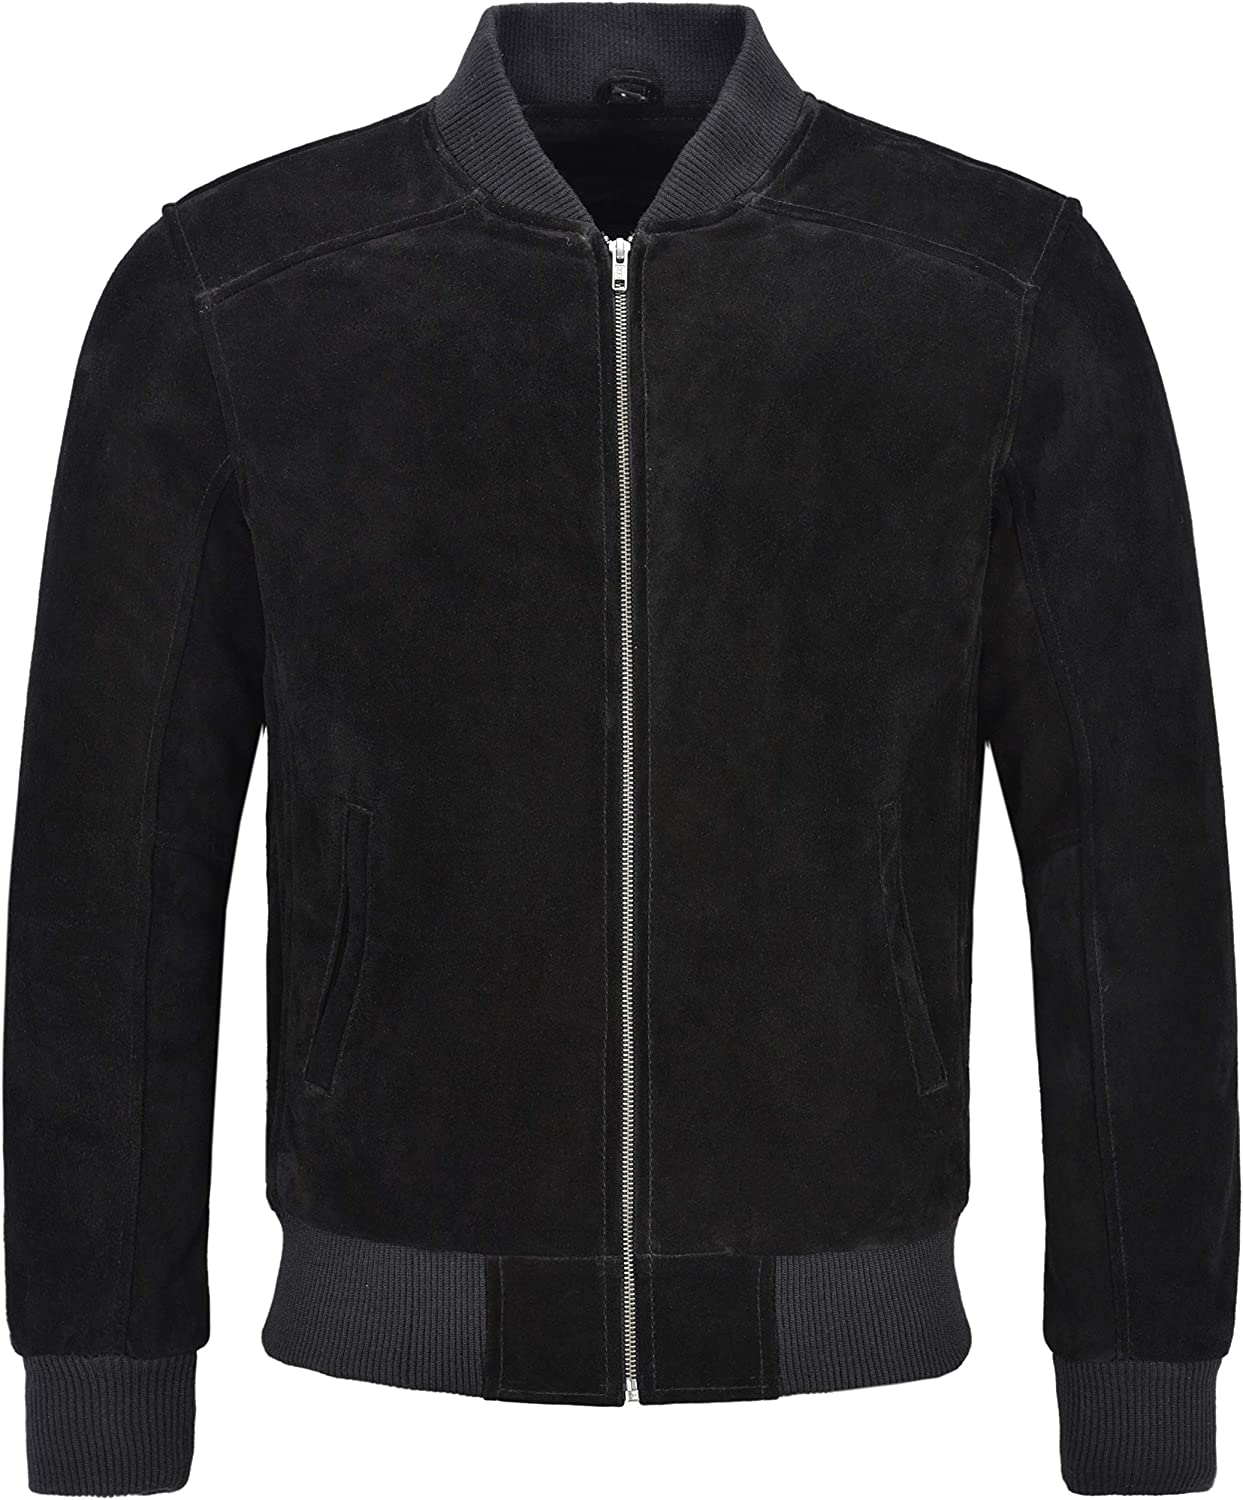 Men's 70'S Bomber Leather Jacket Black Suede Street Inspired Retro Style 275-P